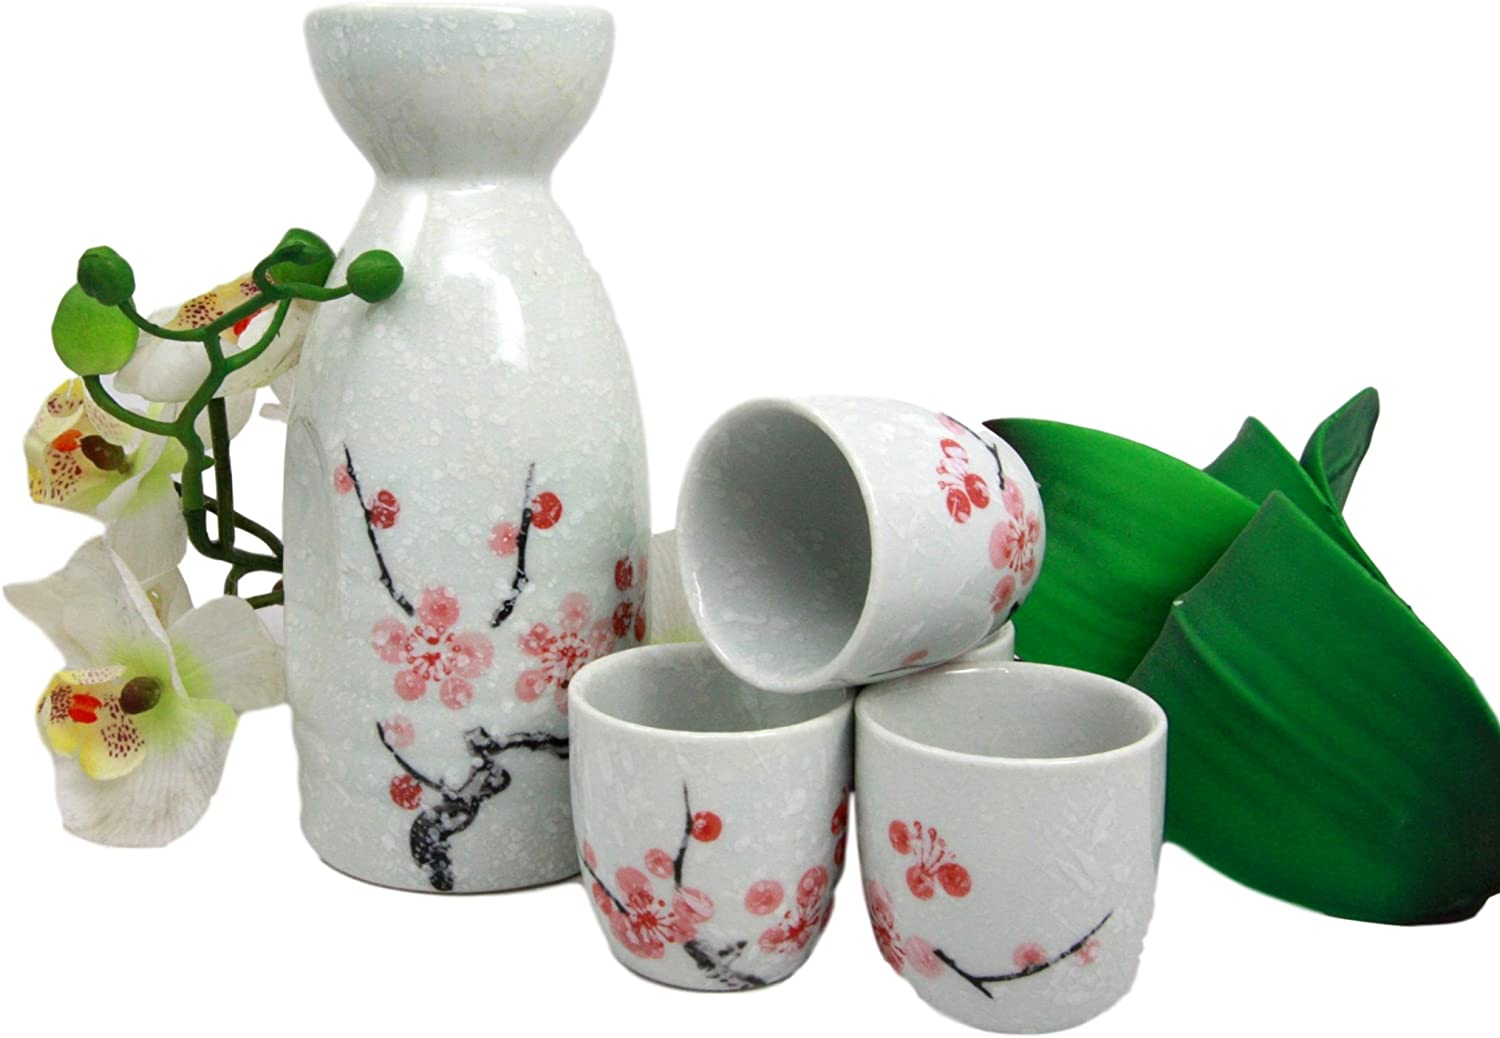 Atlantic Collectibles Japanese 12oz Ceramic Pink Cherry Blossom Sake Set Flask With Four Cups